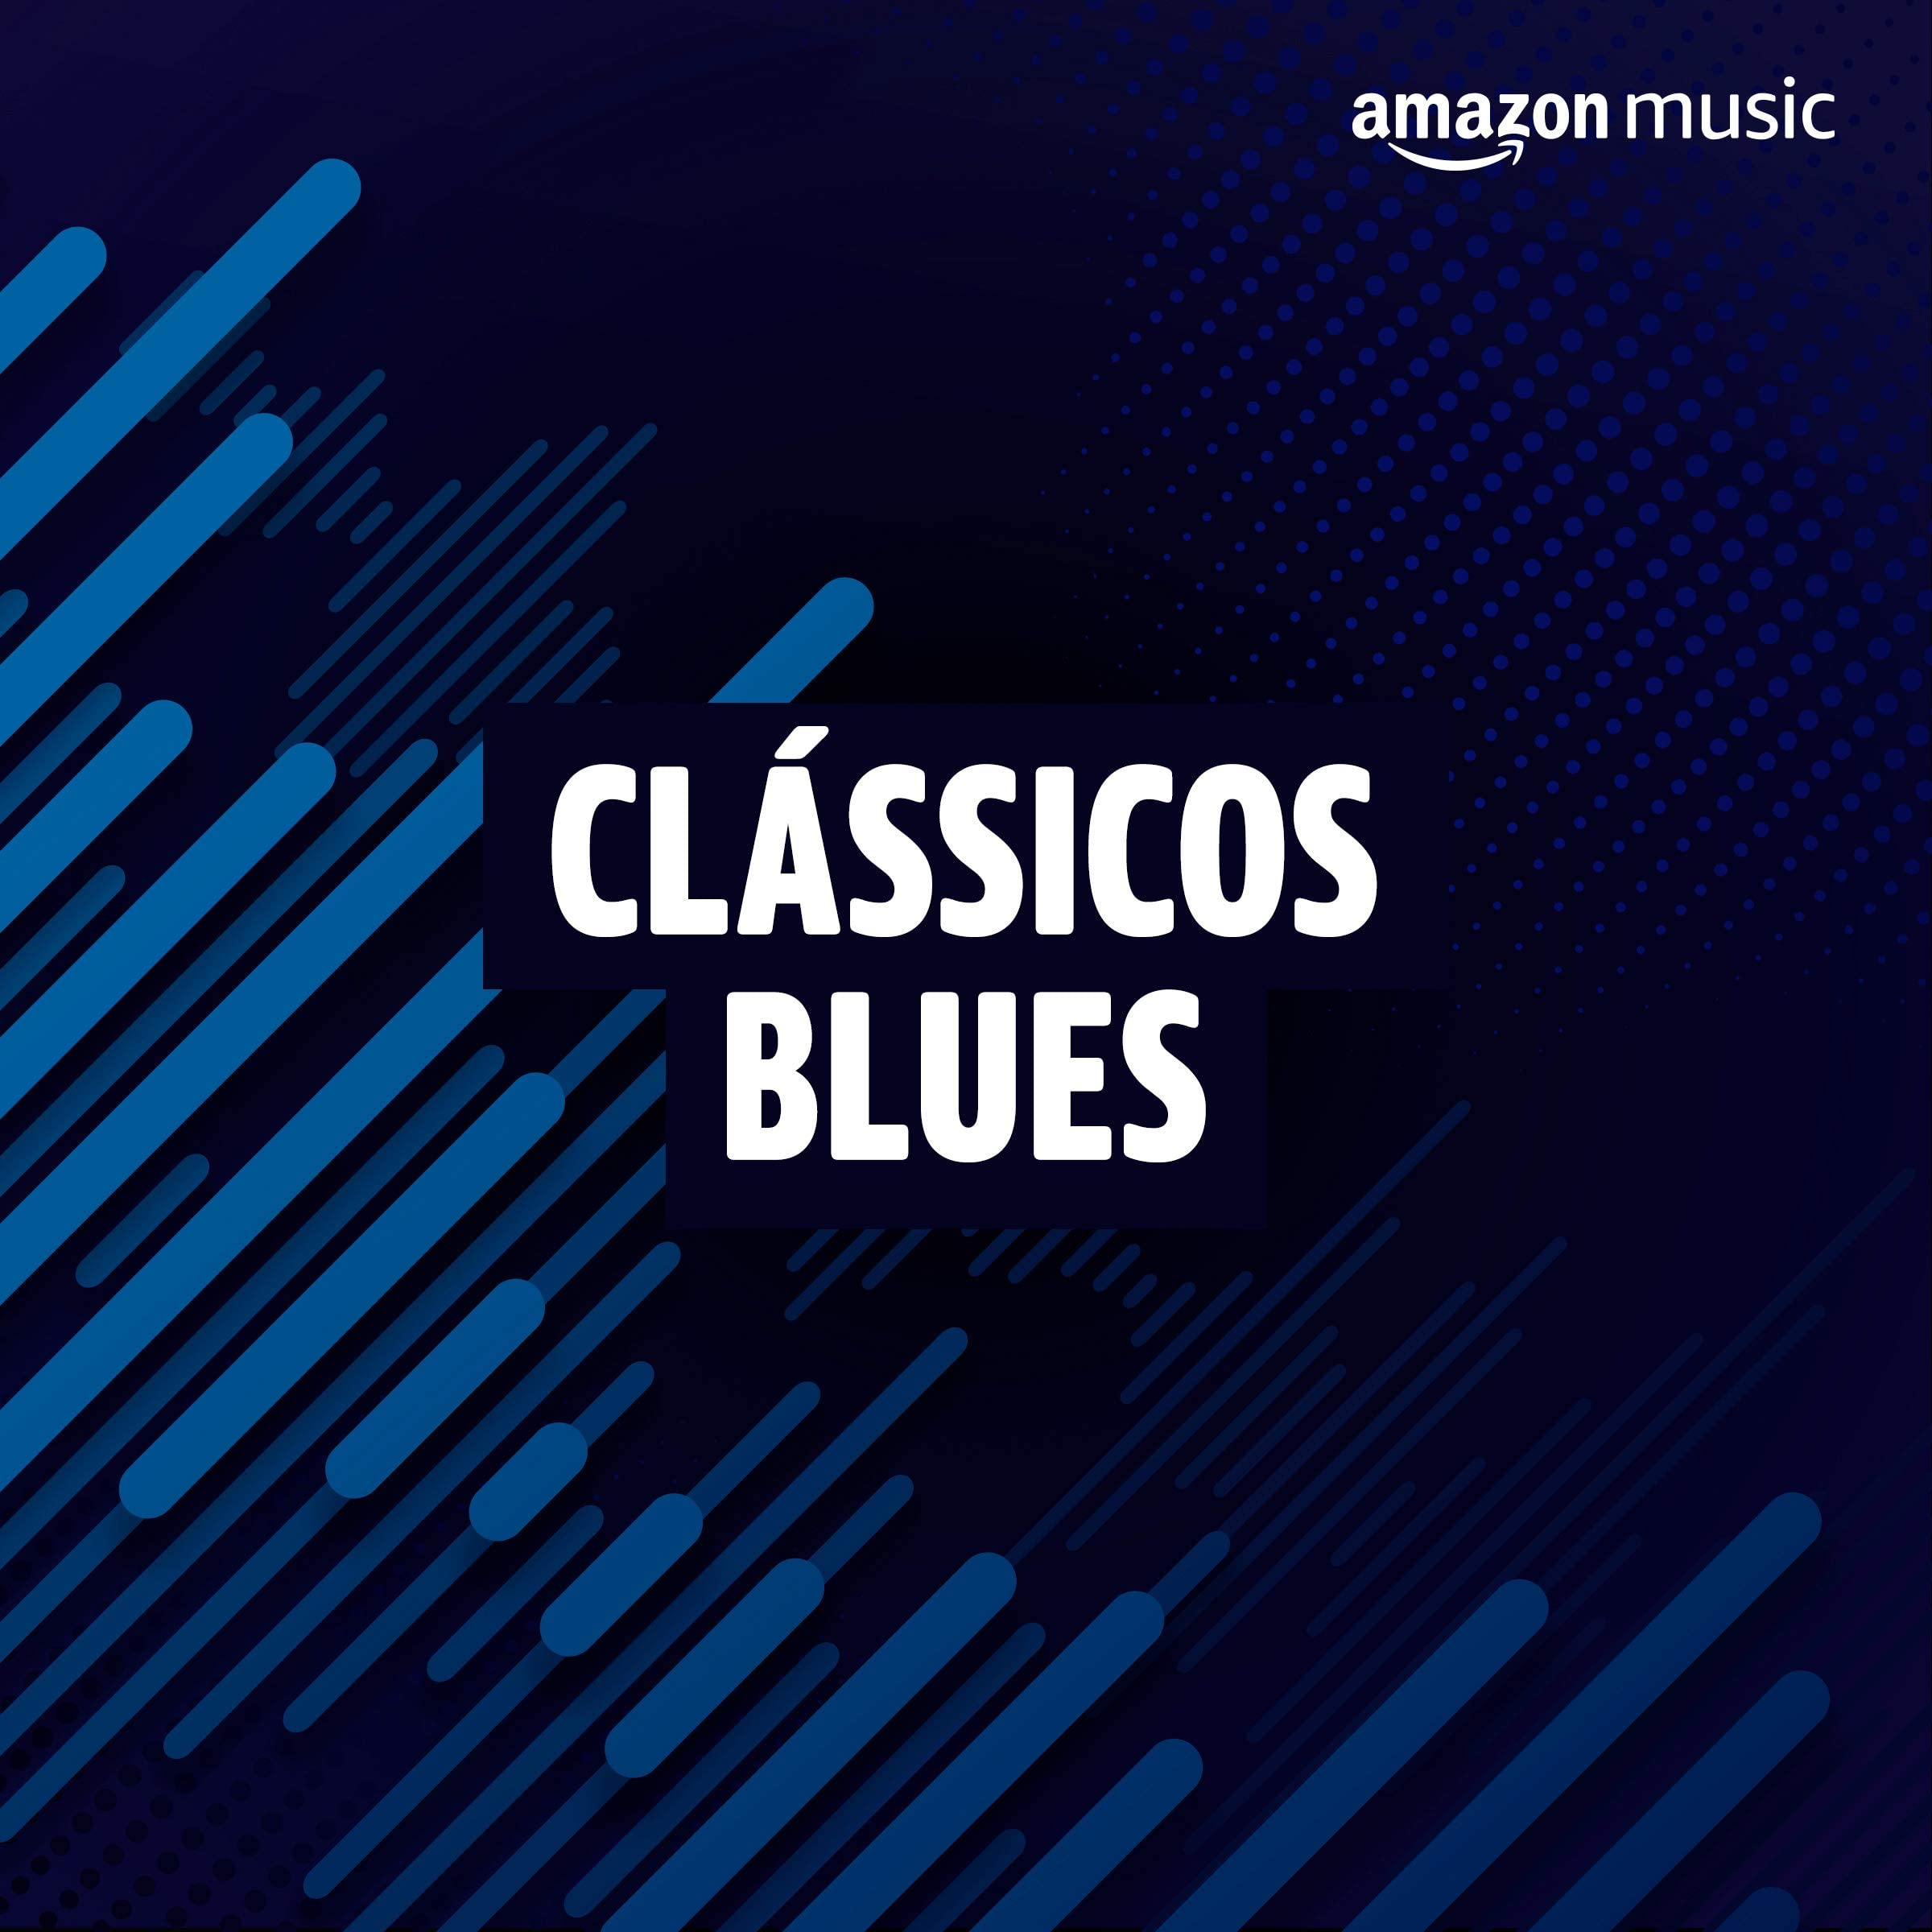 Clássicos Blues